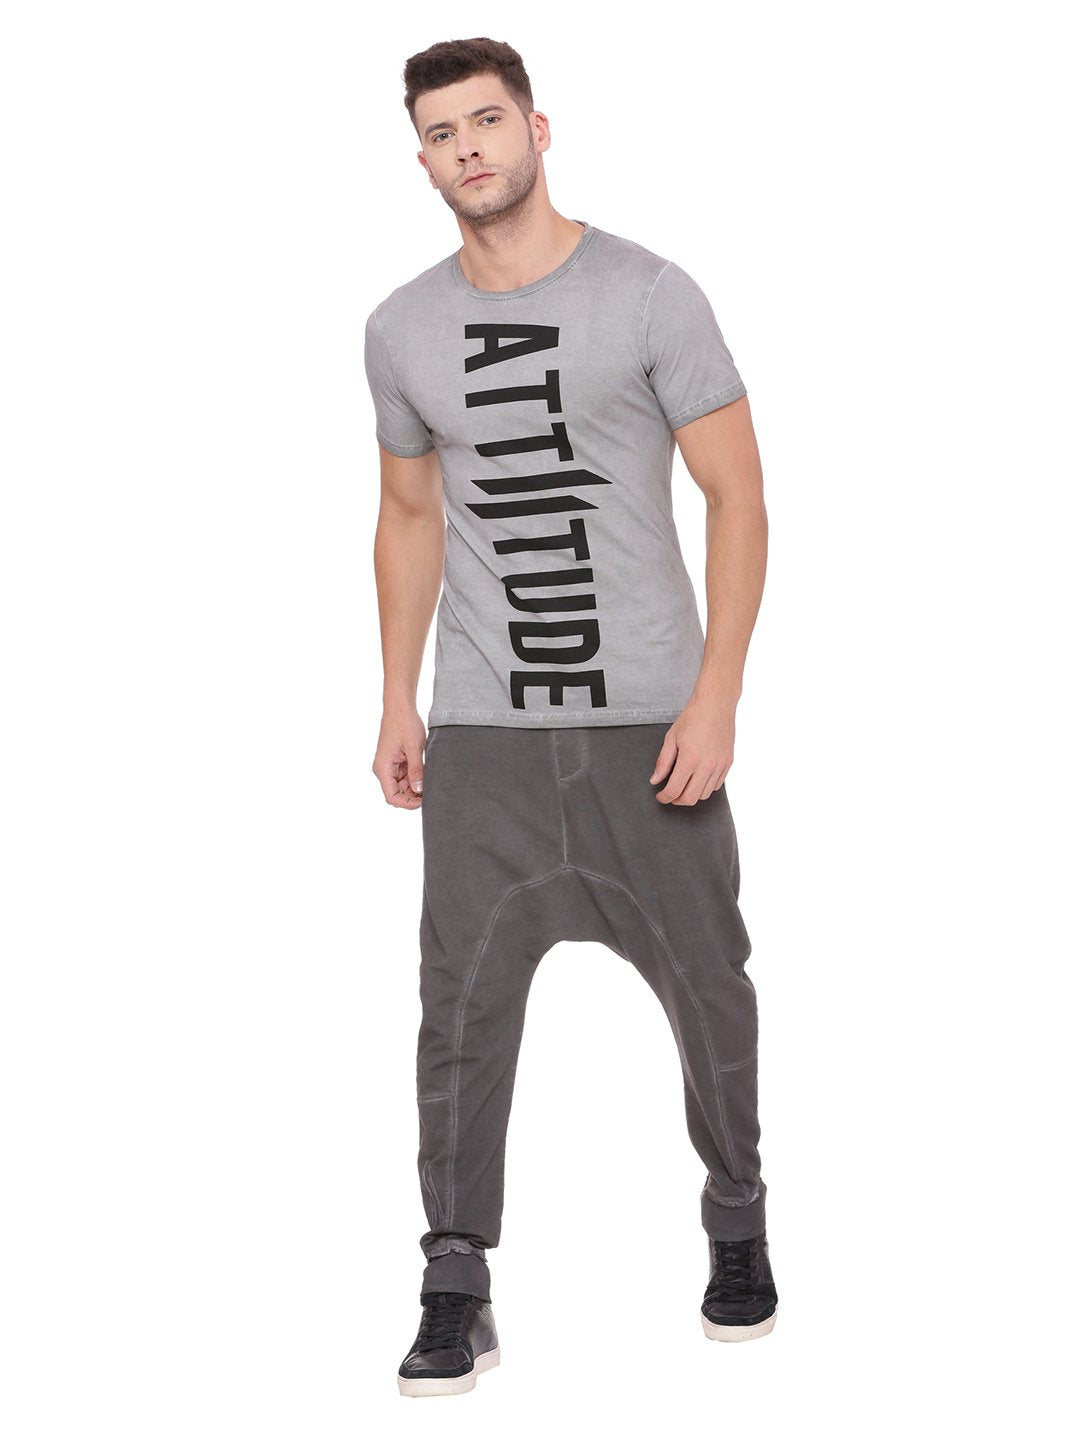 attiitude, my attiitude, attiitude fashion, underground fashion, fashion for men